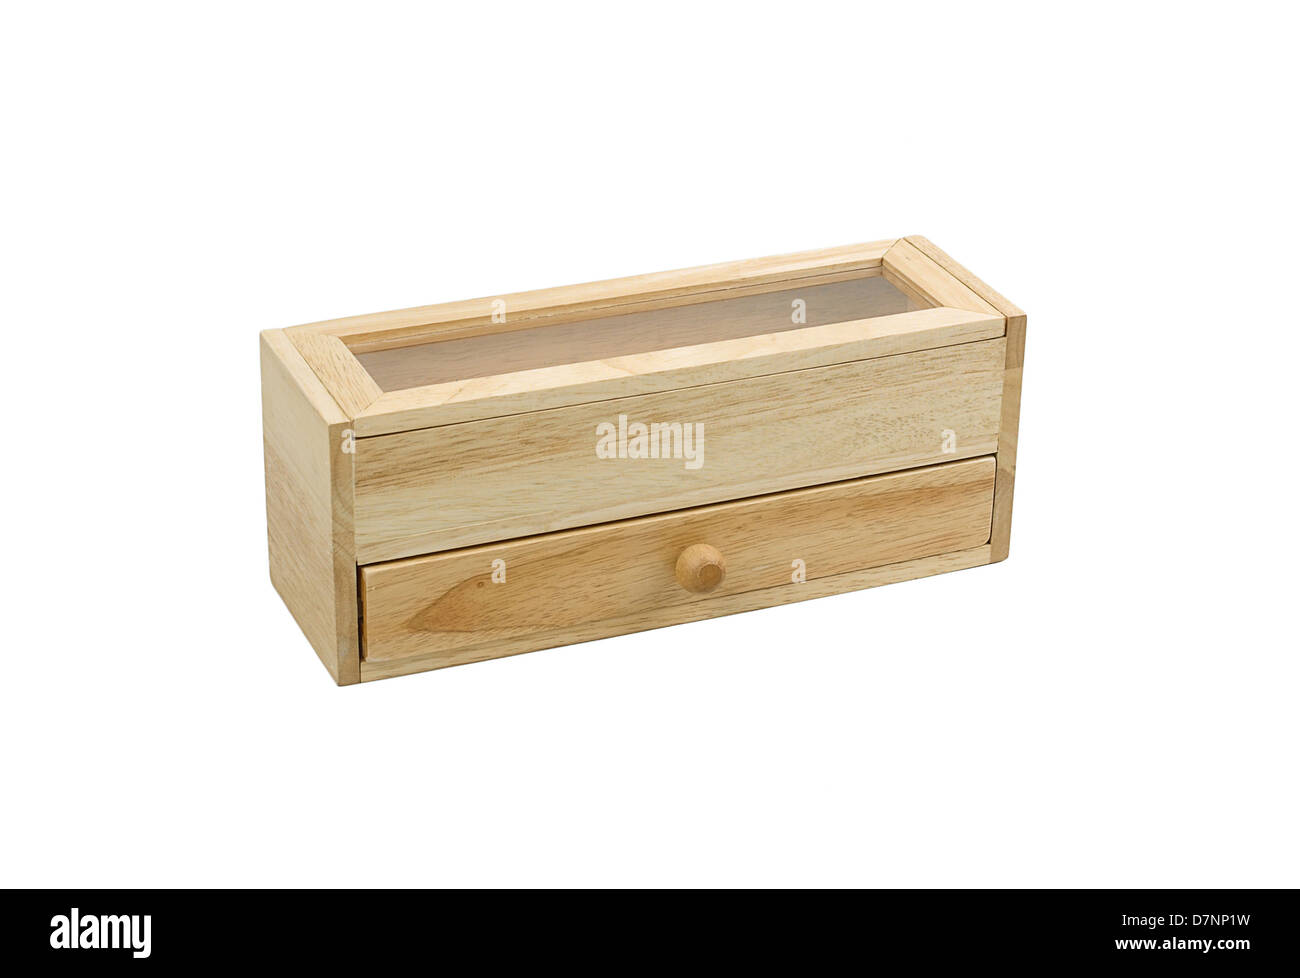 A Small Wooden Cabinet For Storage Spoon Fork Or Small Utensil In